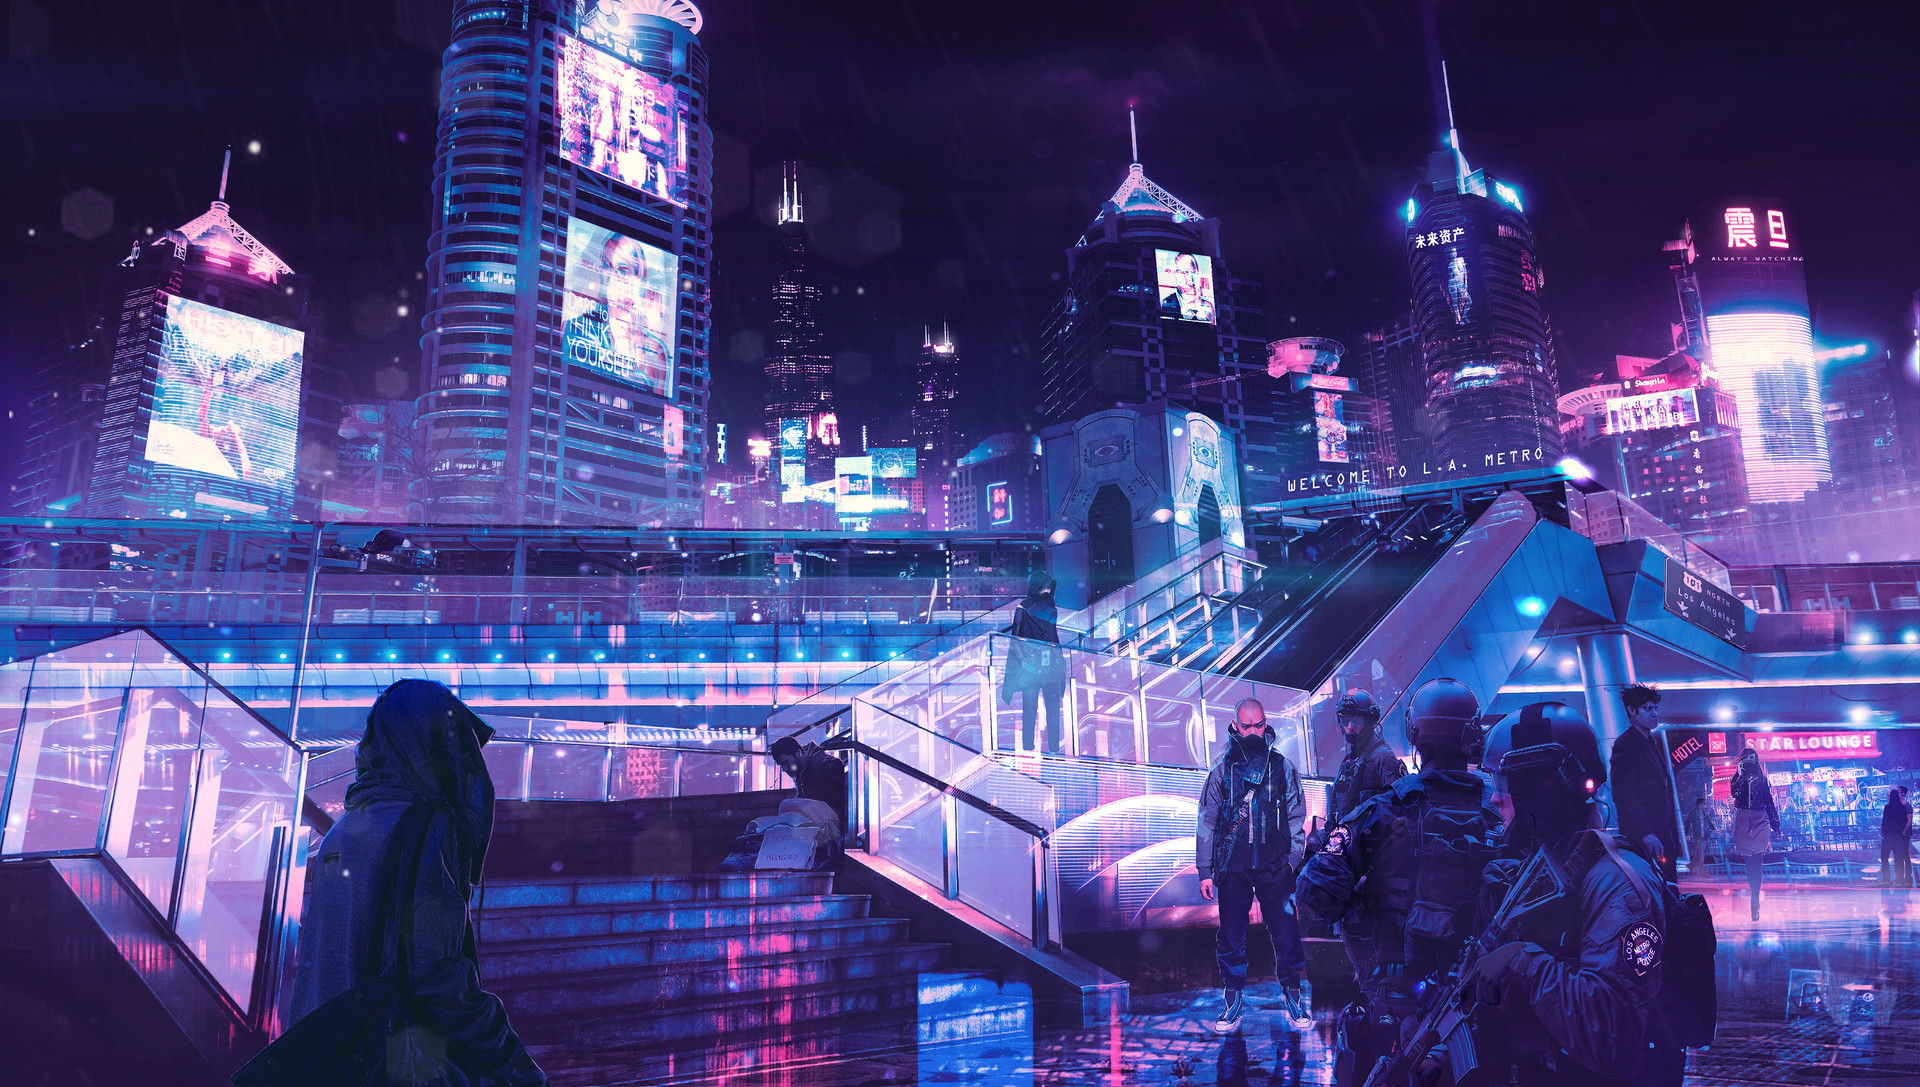 Cyberpunk Neon City Hd Artist 4k Wallpapers Images